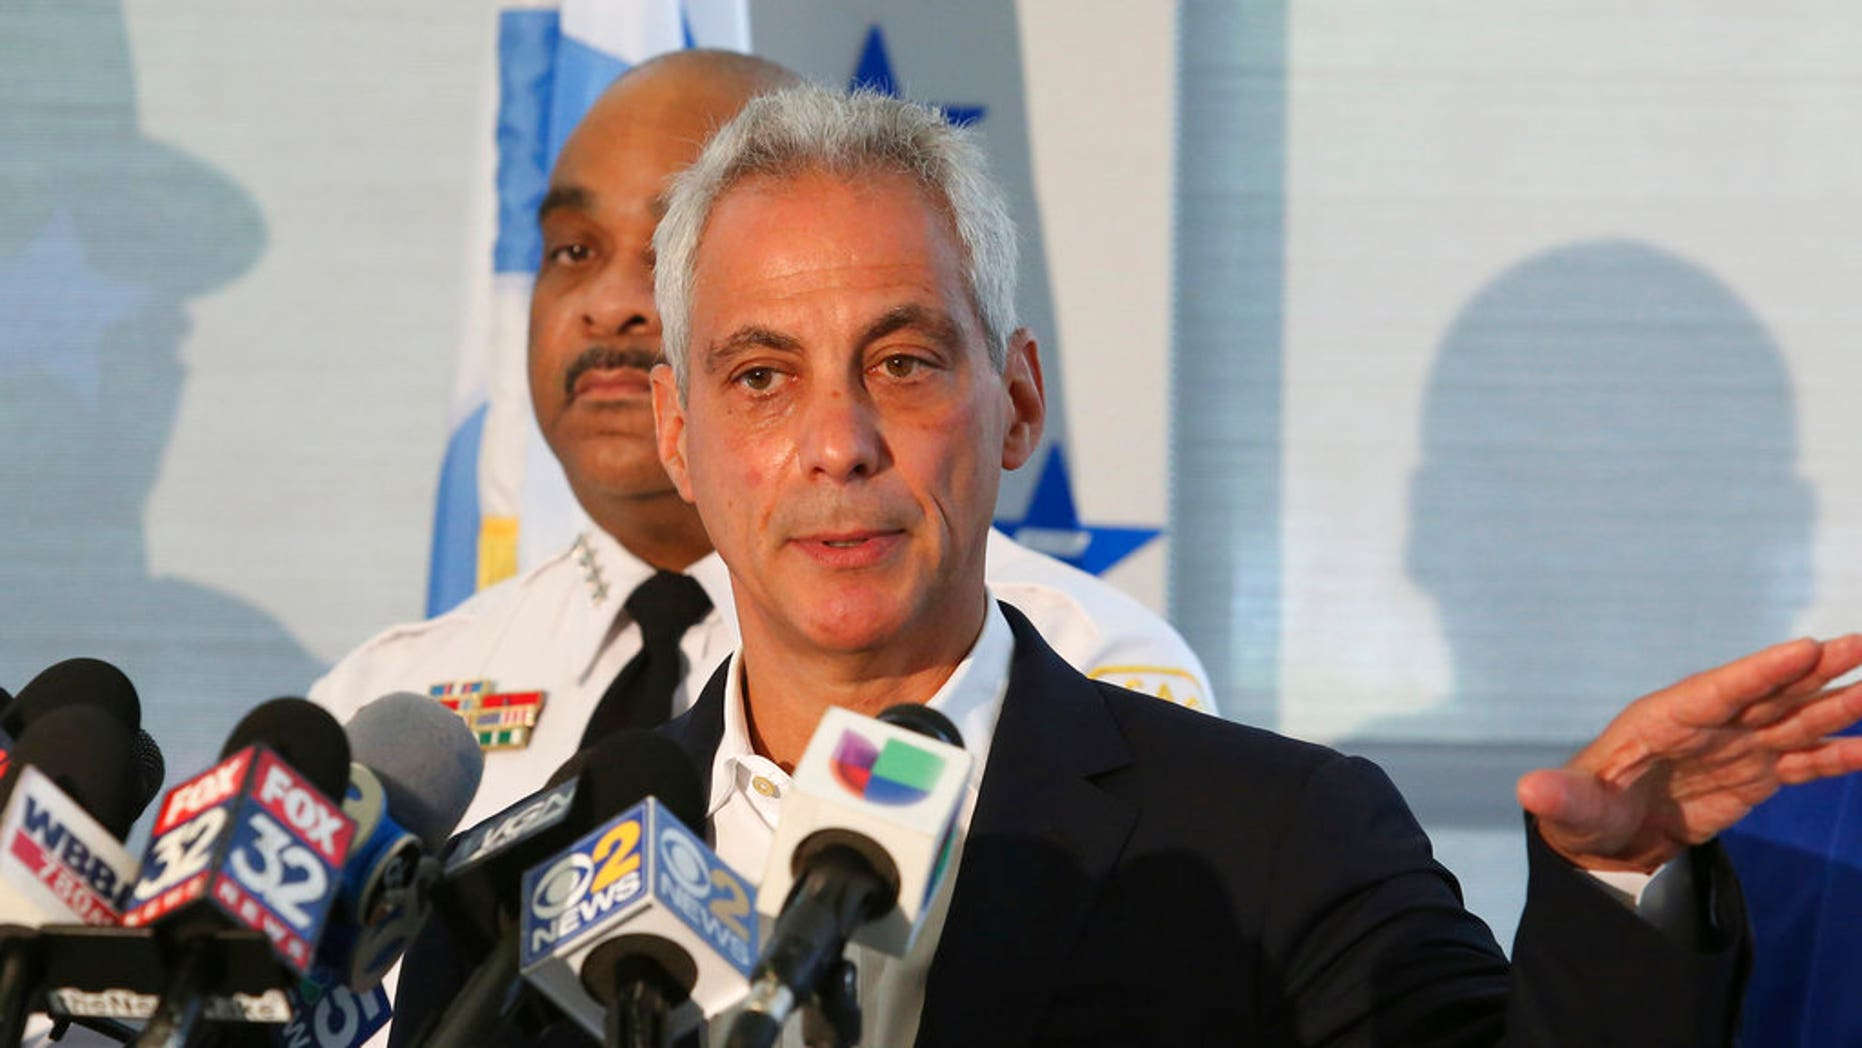 Embattled Chicago Mayor Rahm Emanuel.